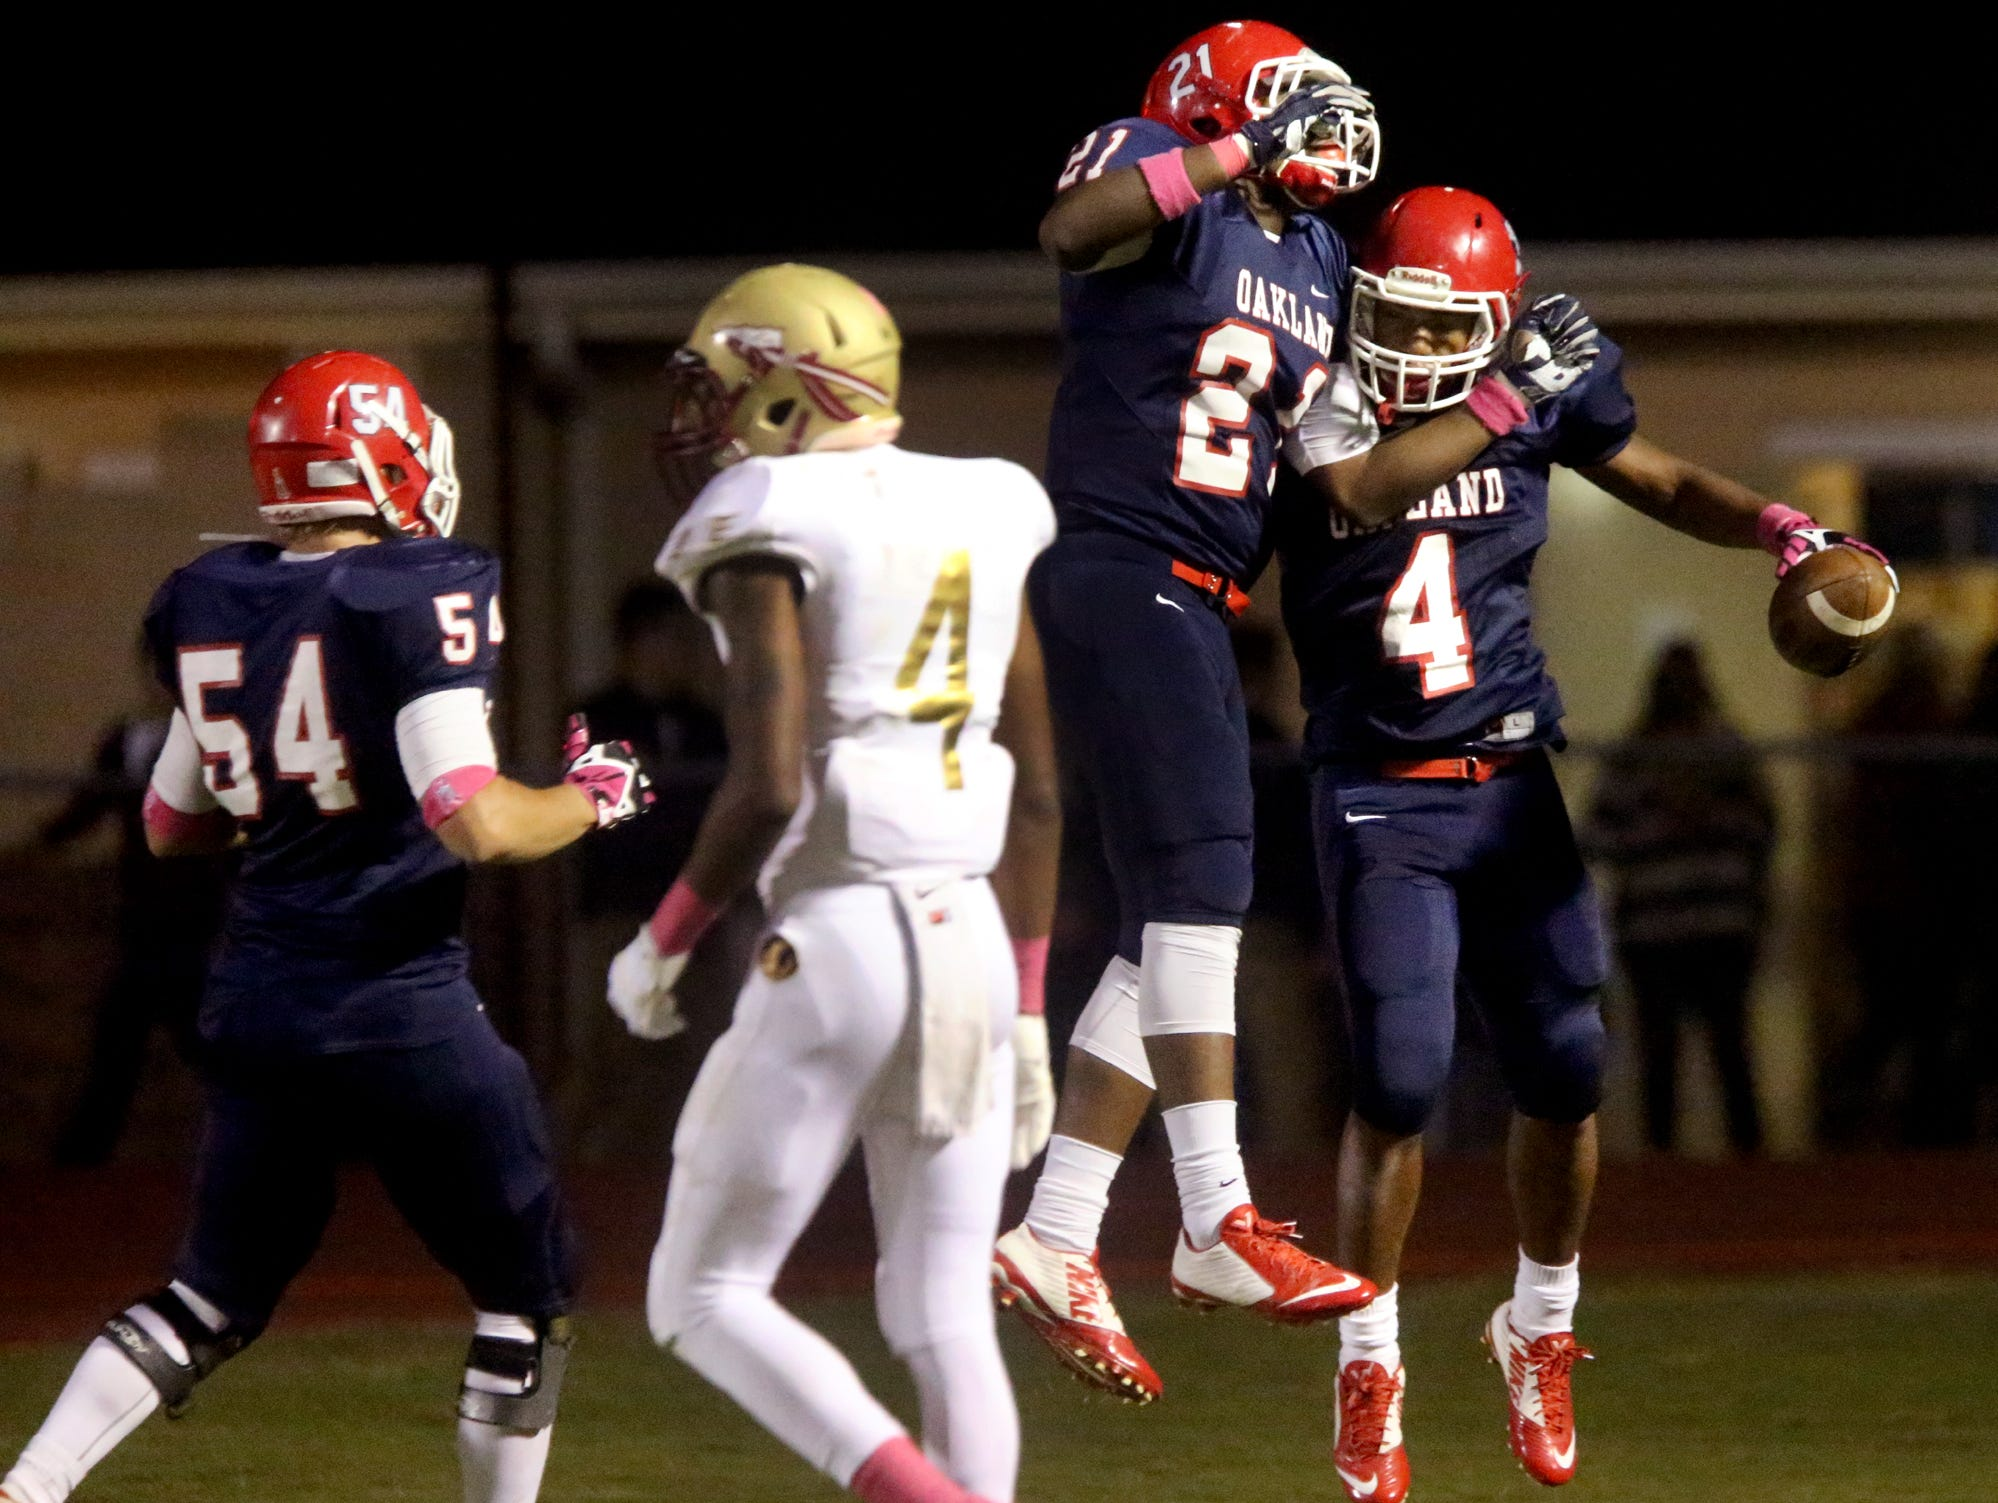 Oakland's Justice Dingle (21) and Lazarius Patterson (4) celebrate Oakland's first touchdown of the game against Riverdale at Oakland.